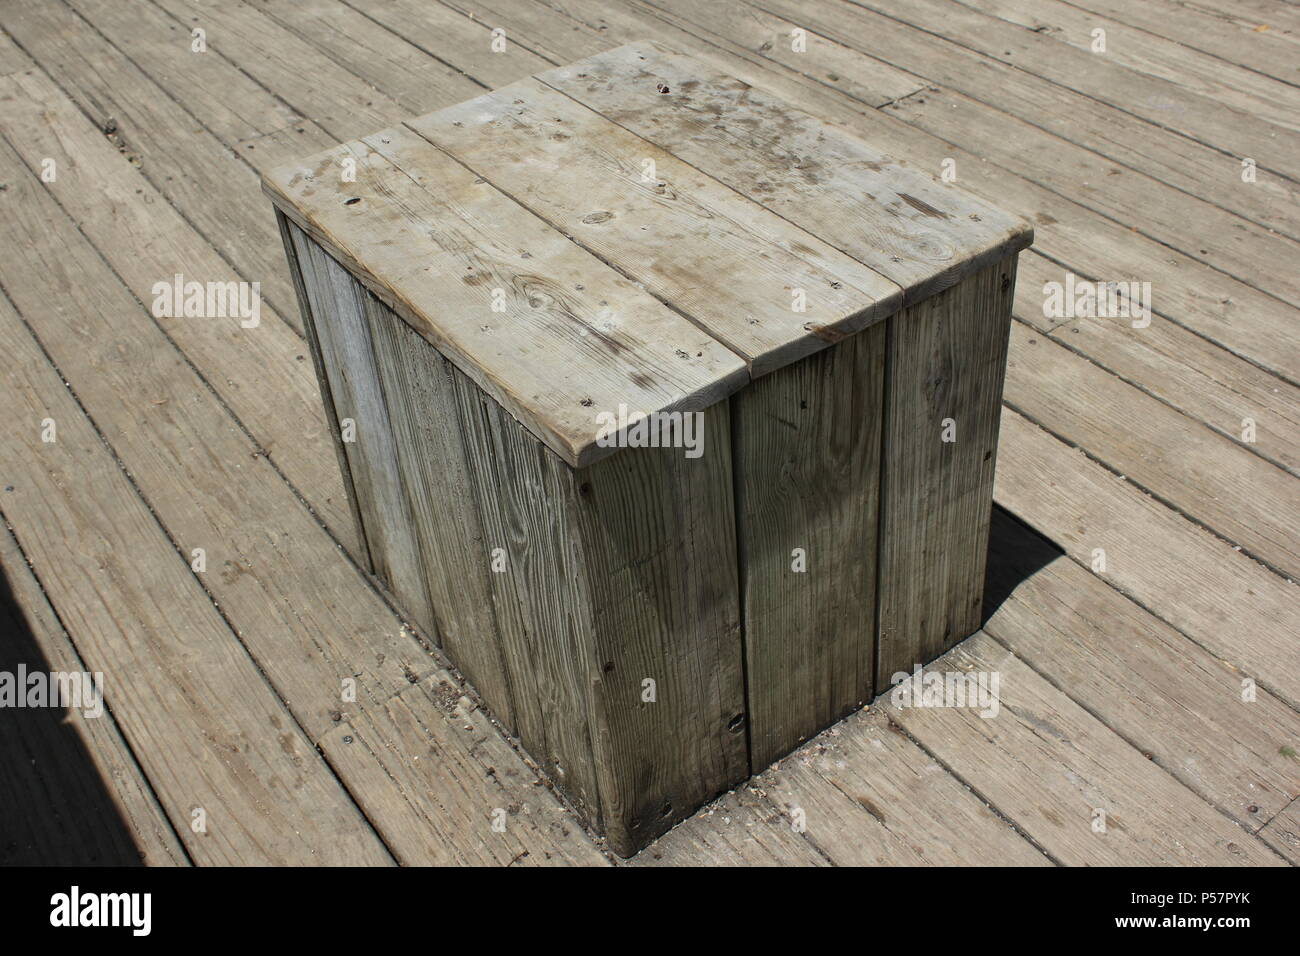 Permanent fishing cube stool found on the fishing deck of the Wildwood Nature Center in suburban Park Ridge, Illinois. - Stock Image